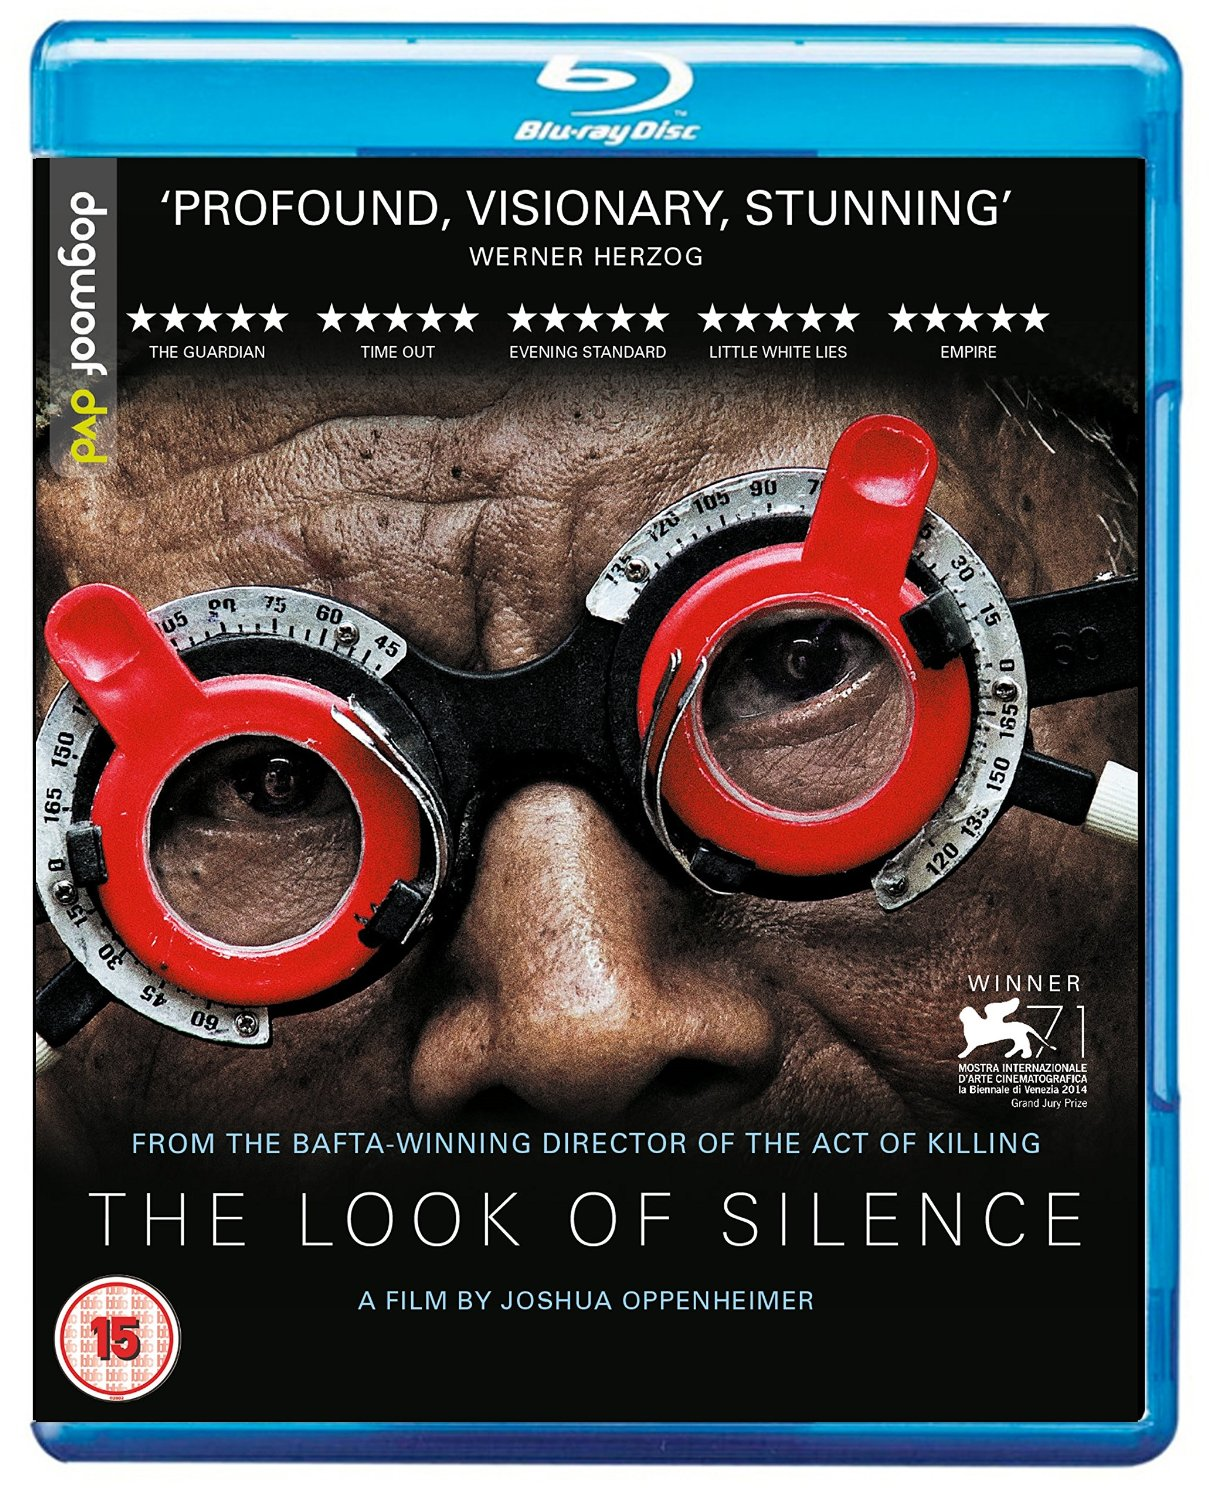 a look at silence of the And in the look of silence, we also see an nbc news report that celebrates the genocide, more or less, right afterwards and we see, most chillingly.